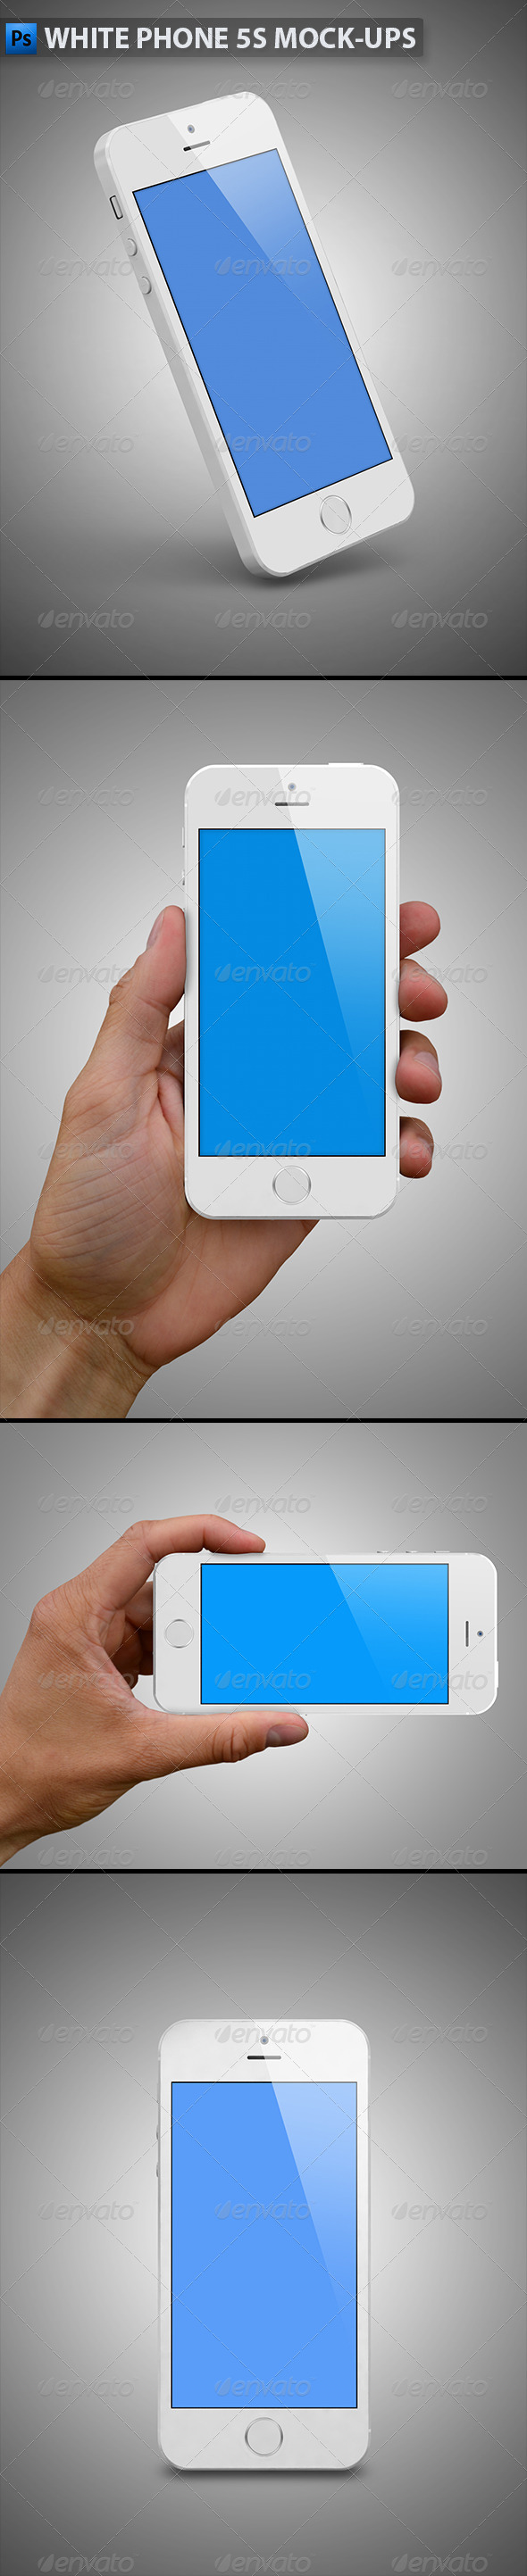 GraphicRiver White Phone 5s Mock-Ups 6215131